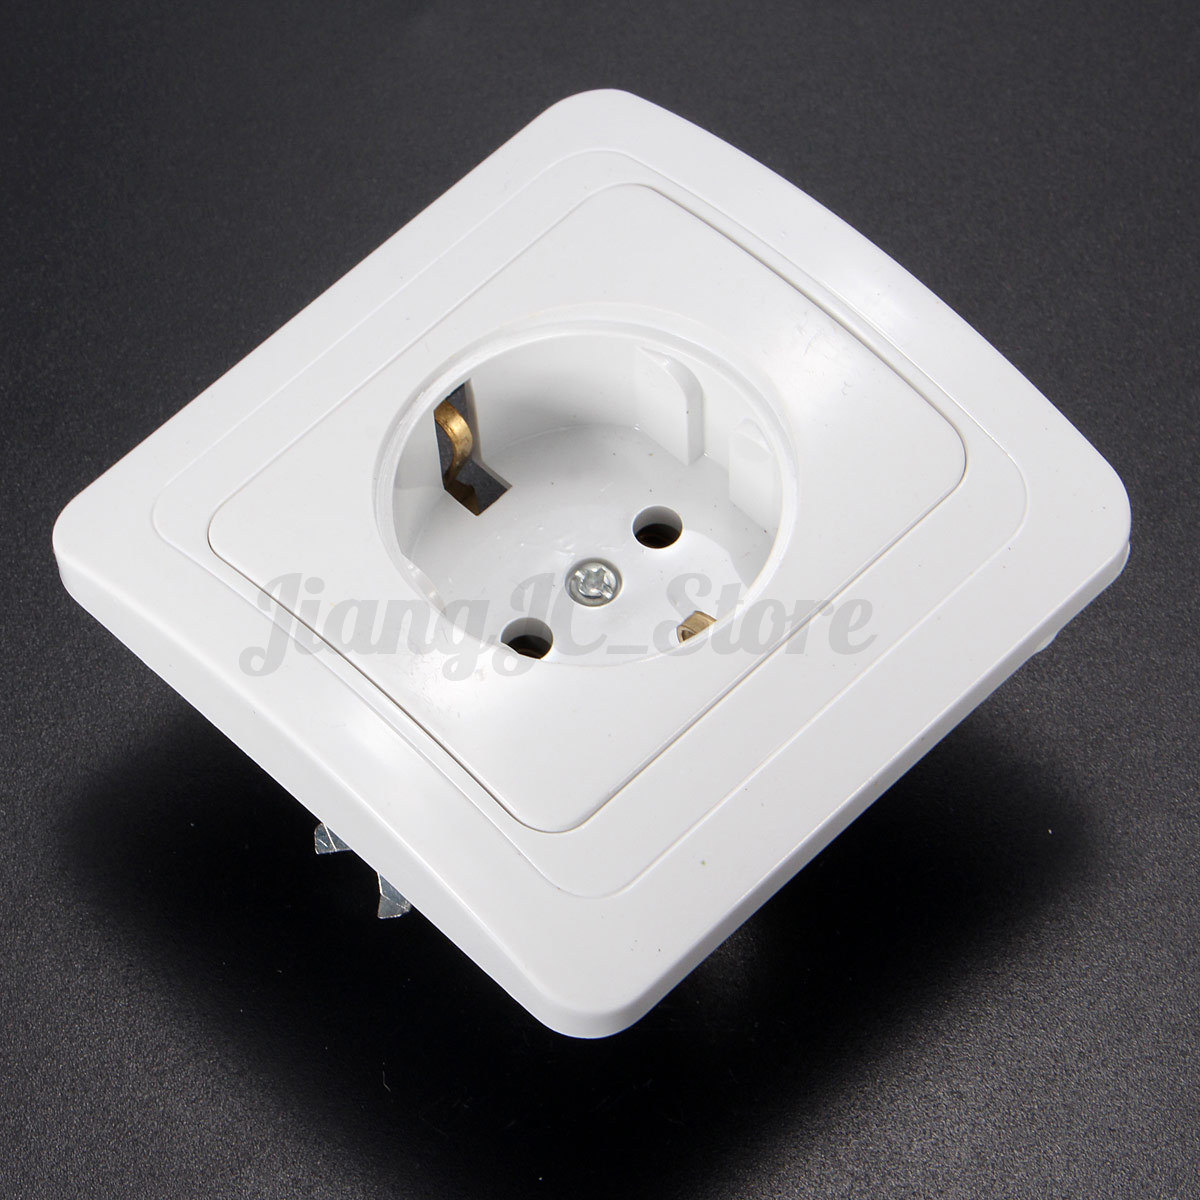 Wall Plug Light Switch : Universal Electrical AU USB Power Outlet Light Switch Wall Socket TV LAN Frame eBay